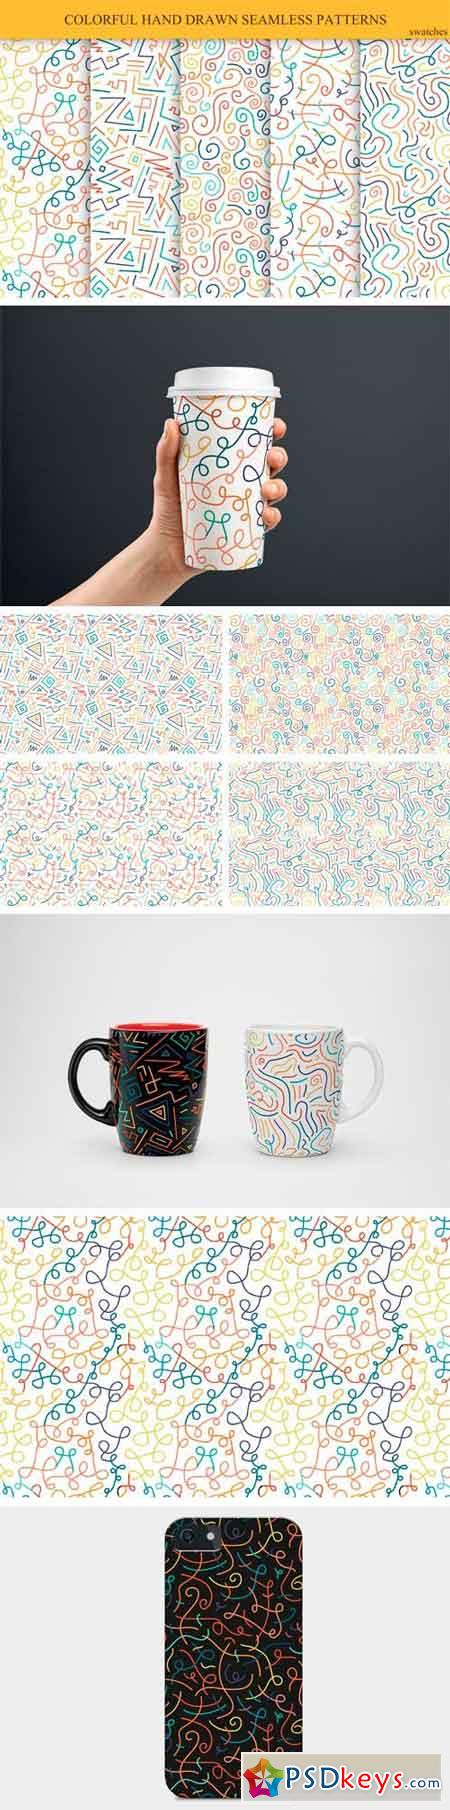 Hand Drawn Seamless Color Patterns  1165901